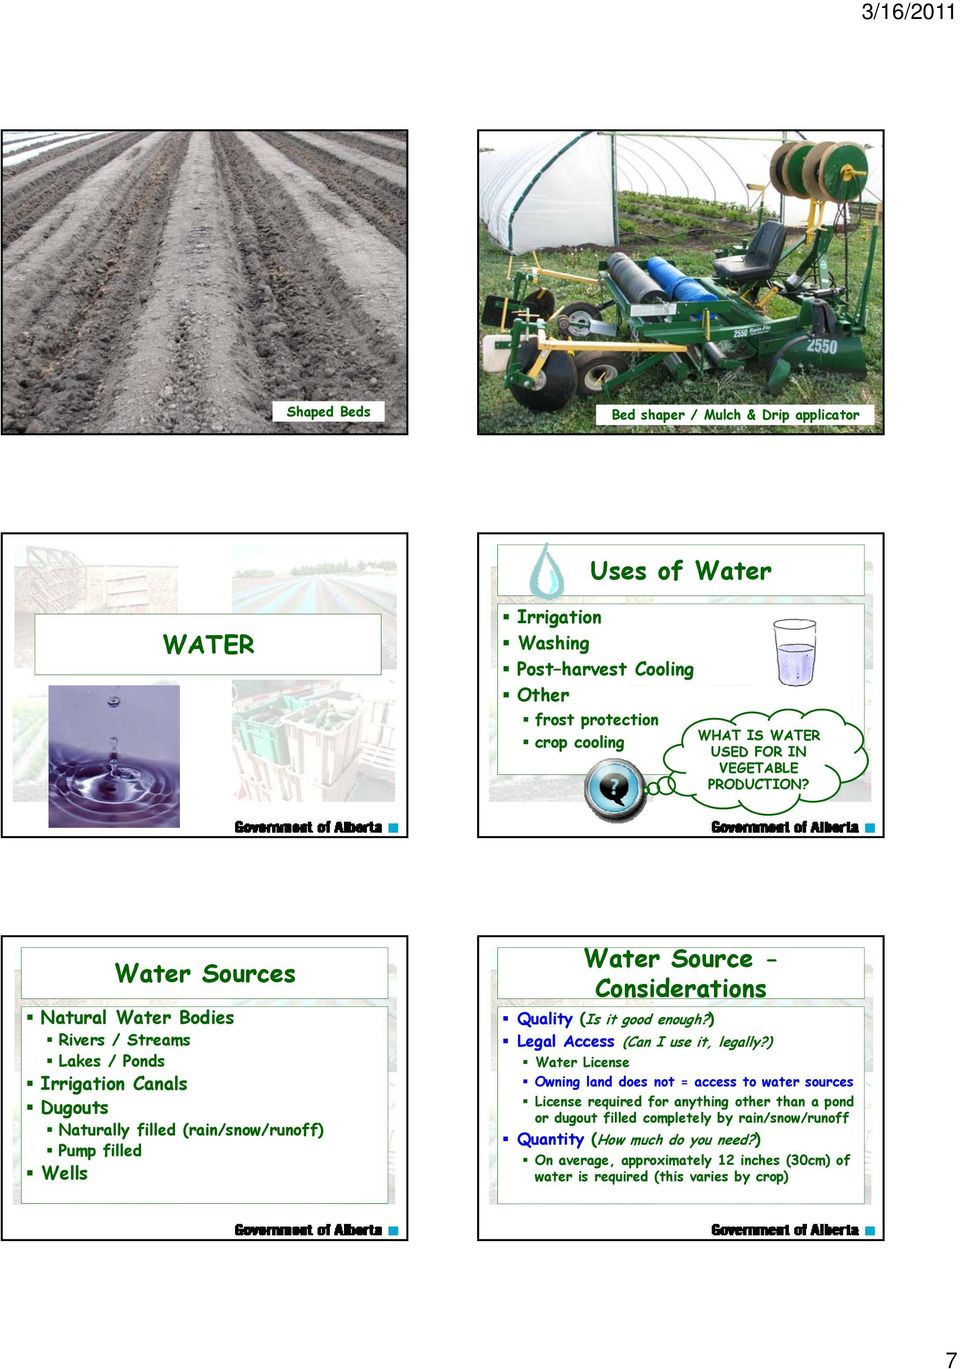 Water Sources Natural Water Bodies Rivers / Streams Lakes / Ponds Irrigation Canals Dugouts Naturally filled (rain/snow/runoff) Pump filled Wells Water Source - Considerations